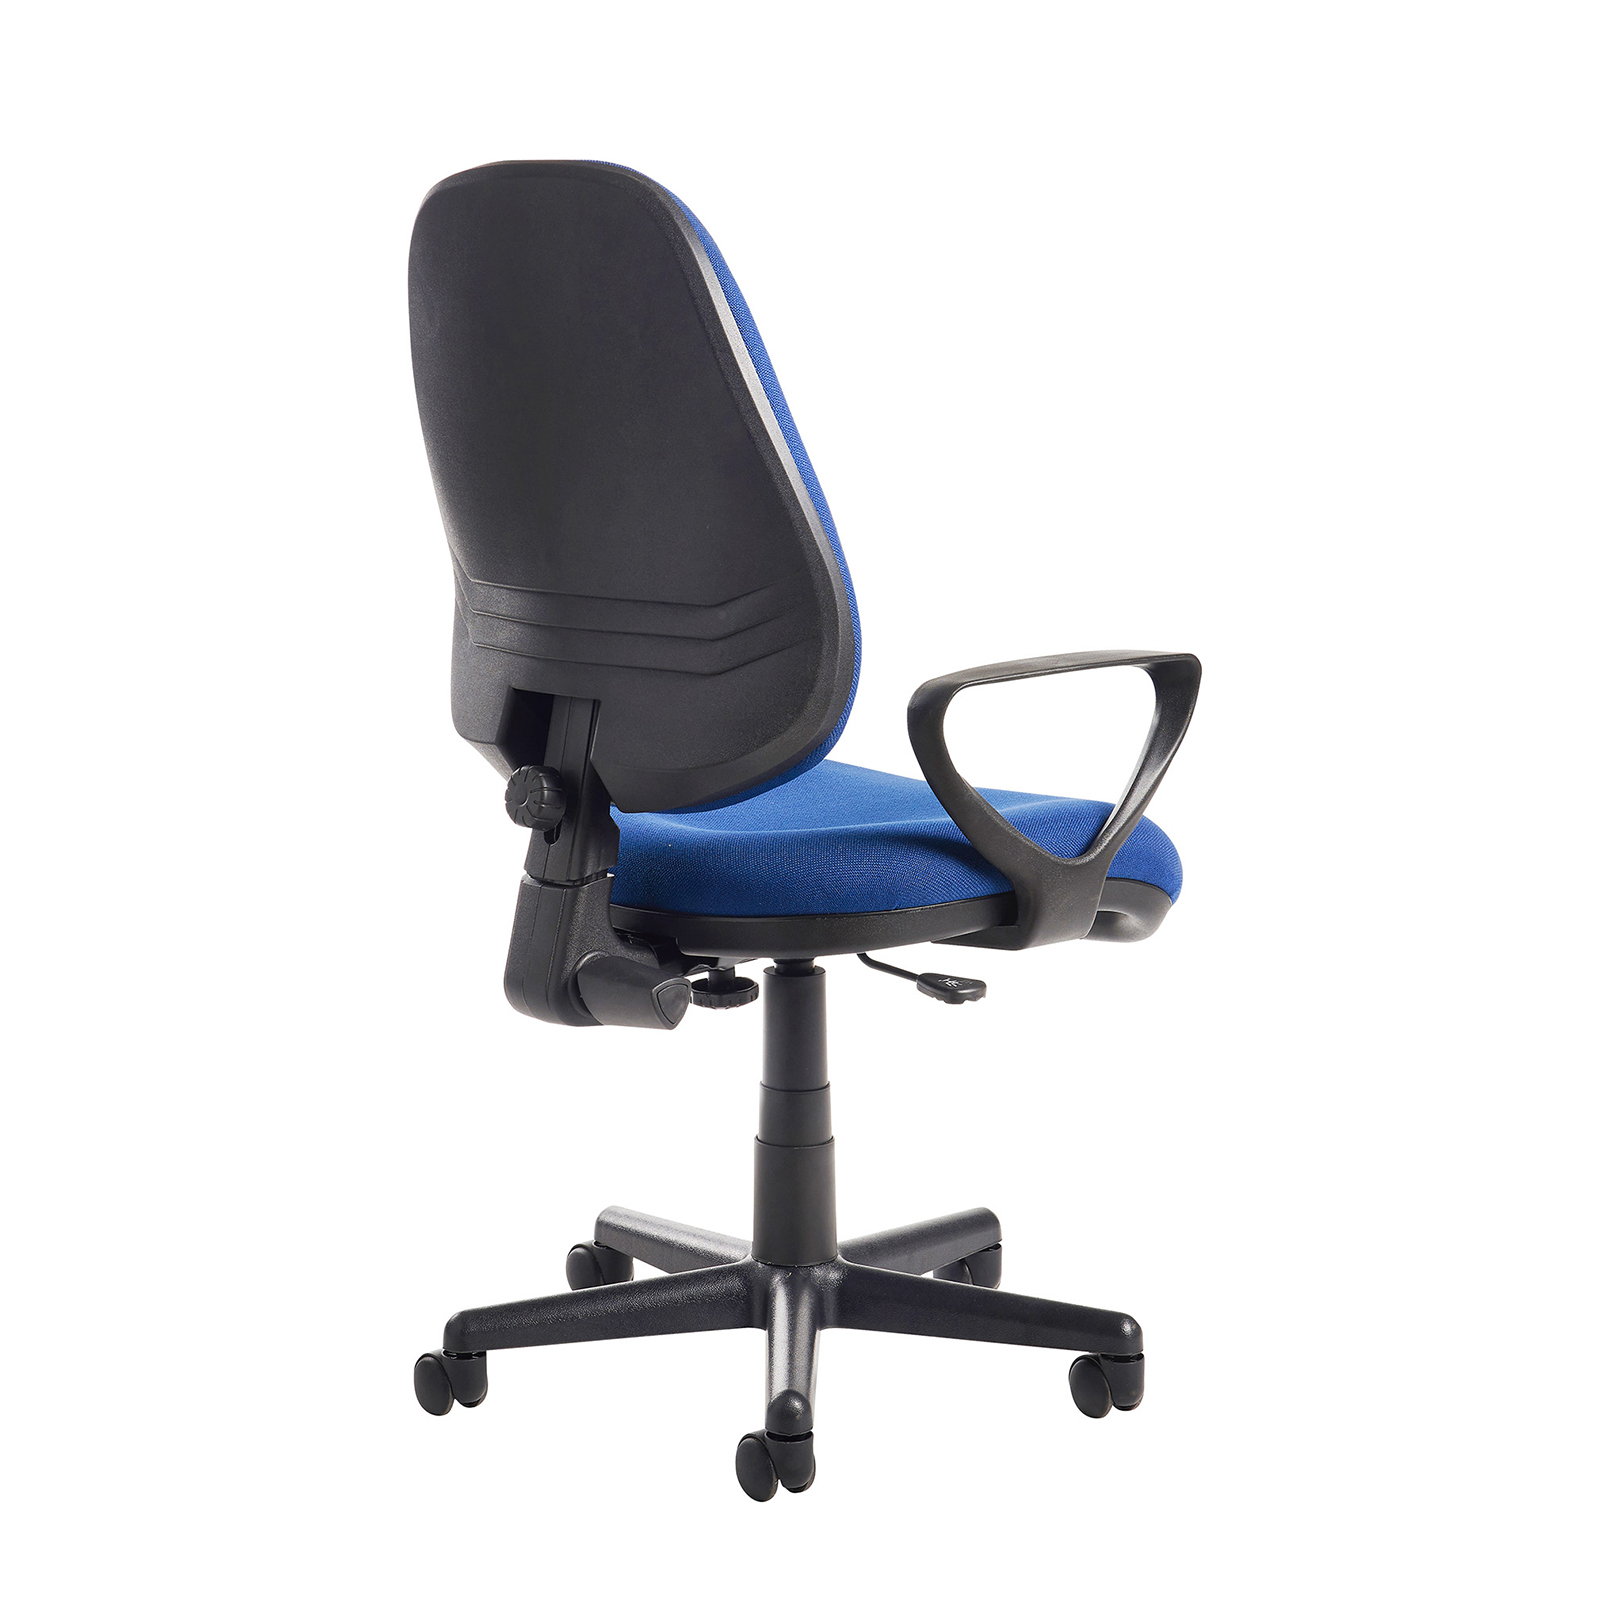 Chairs Bilbao fabric operators chair with fixed arms - blue